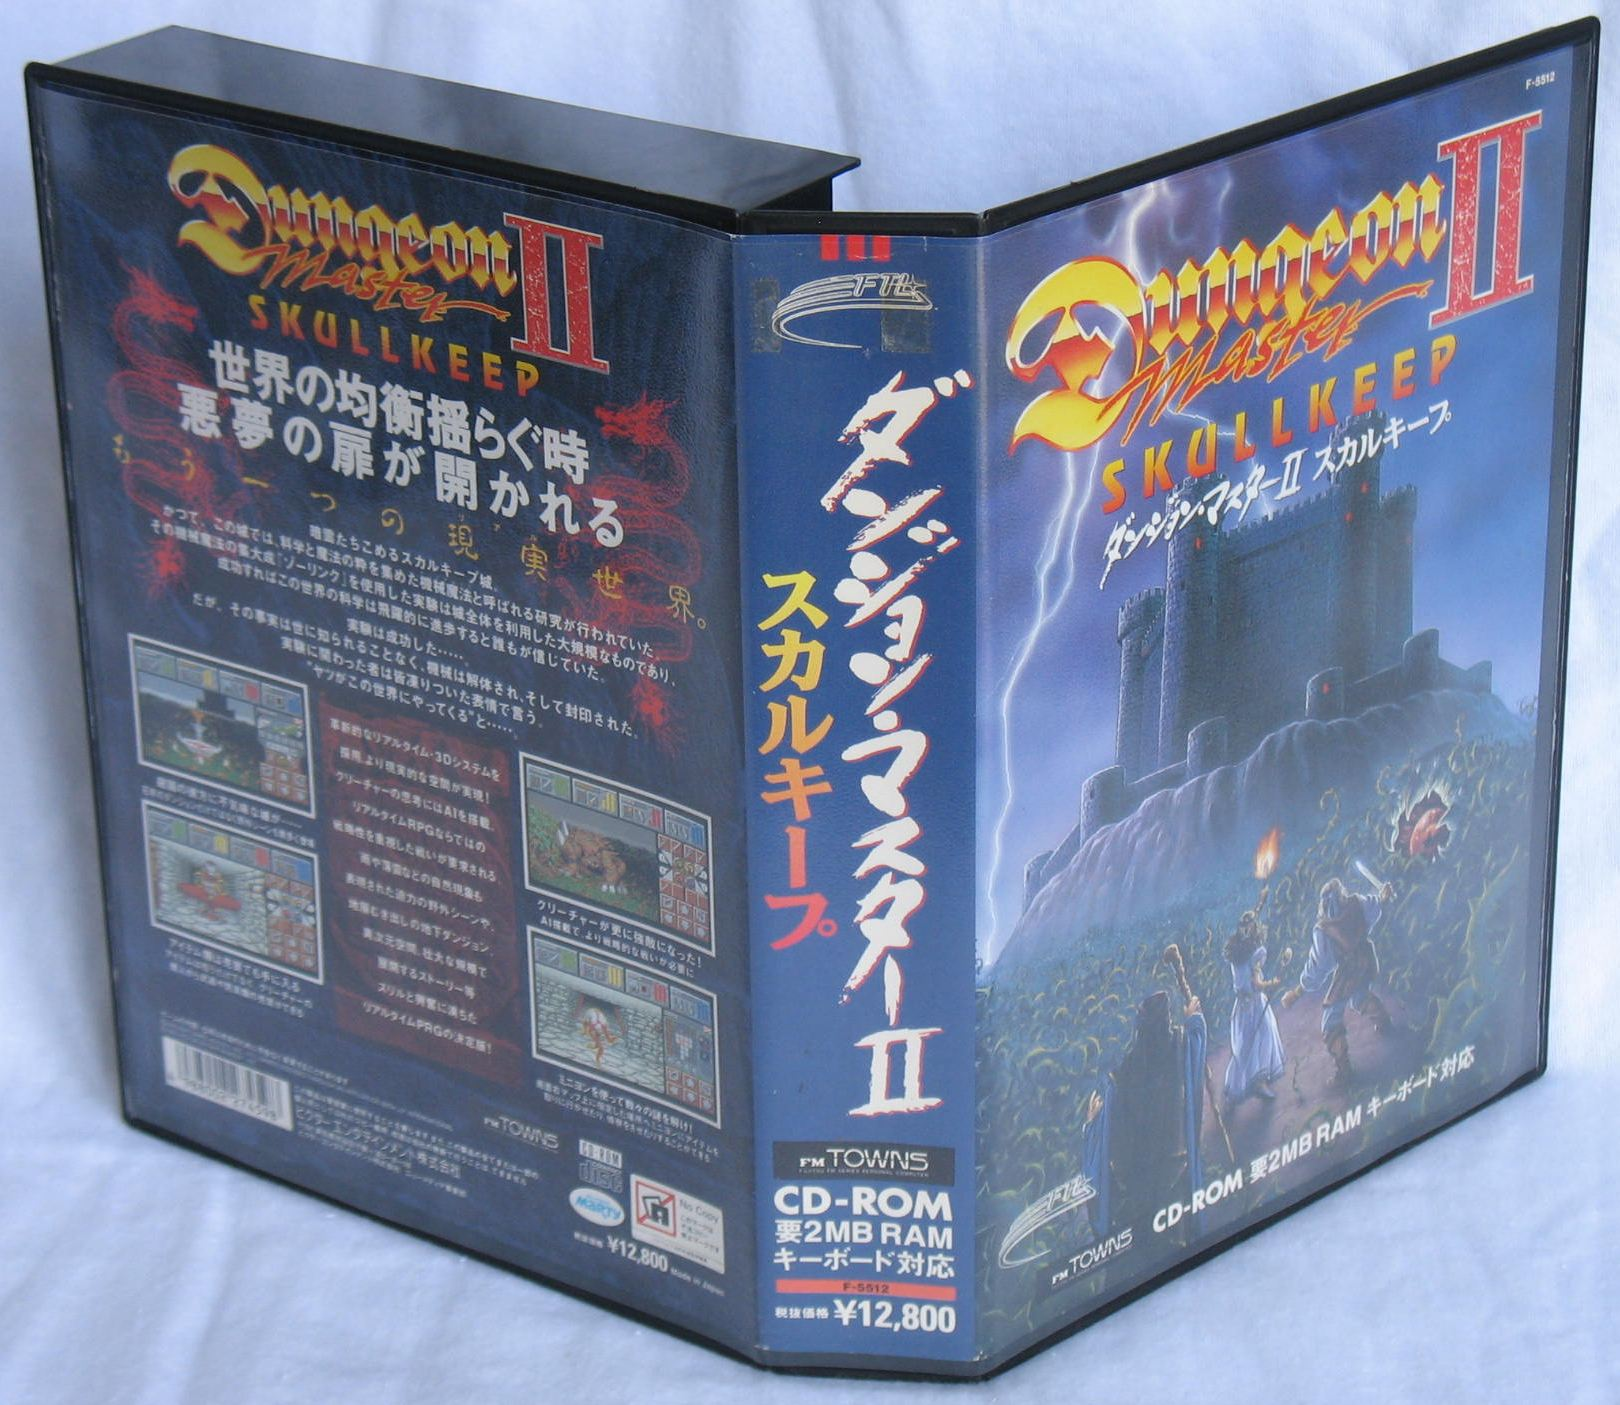 Game - Dungeon Master II - JP - FM Towns - Box - Front Back Left Top - Photo